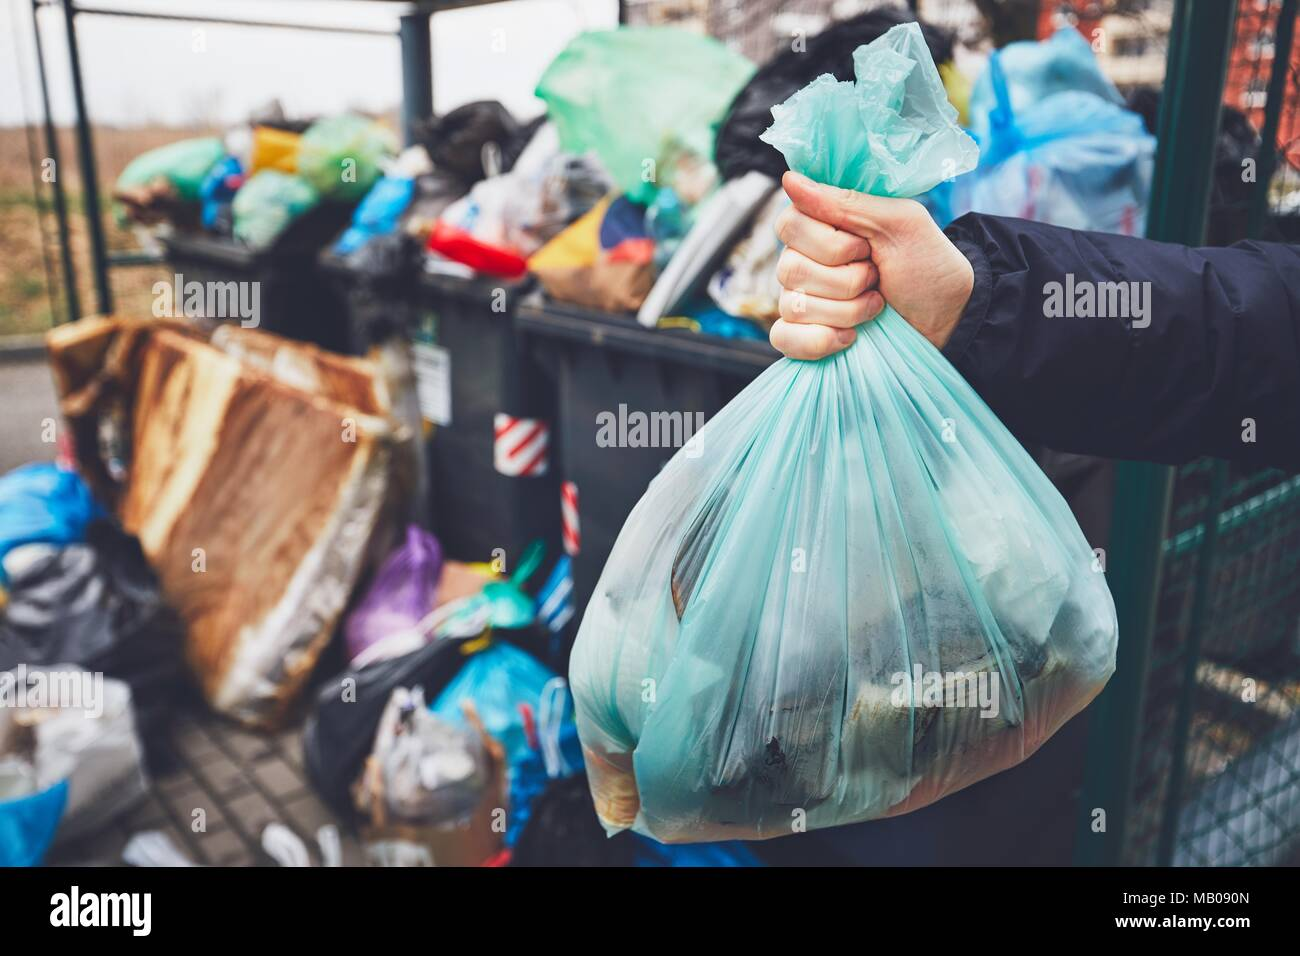 Hand with garbage against full trash cans with rubbish bags overflowing onto the pavement. - Stock Image